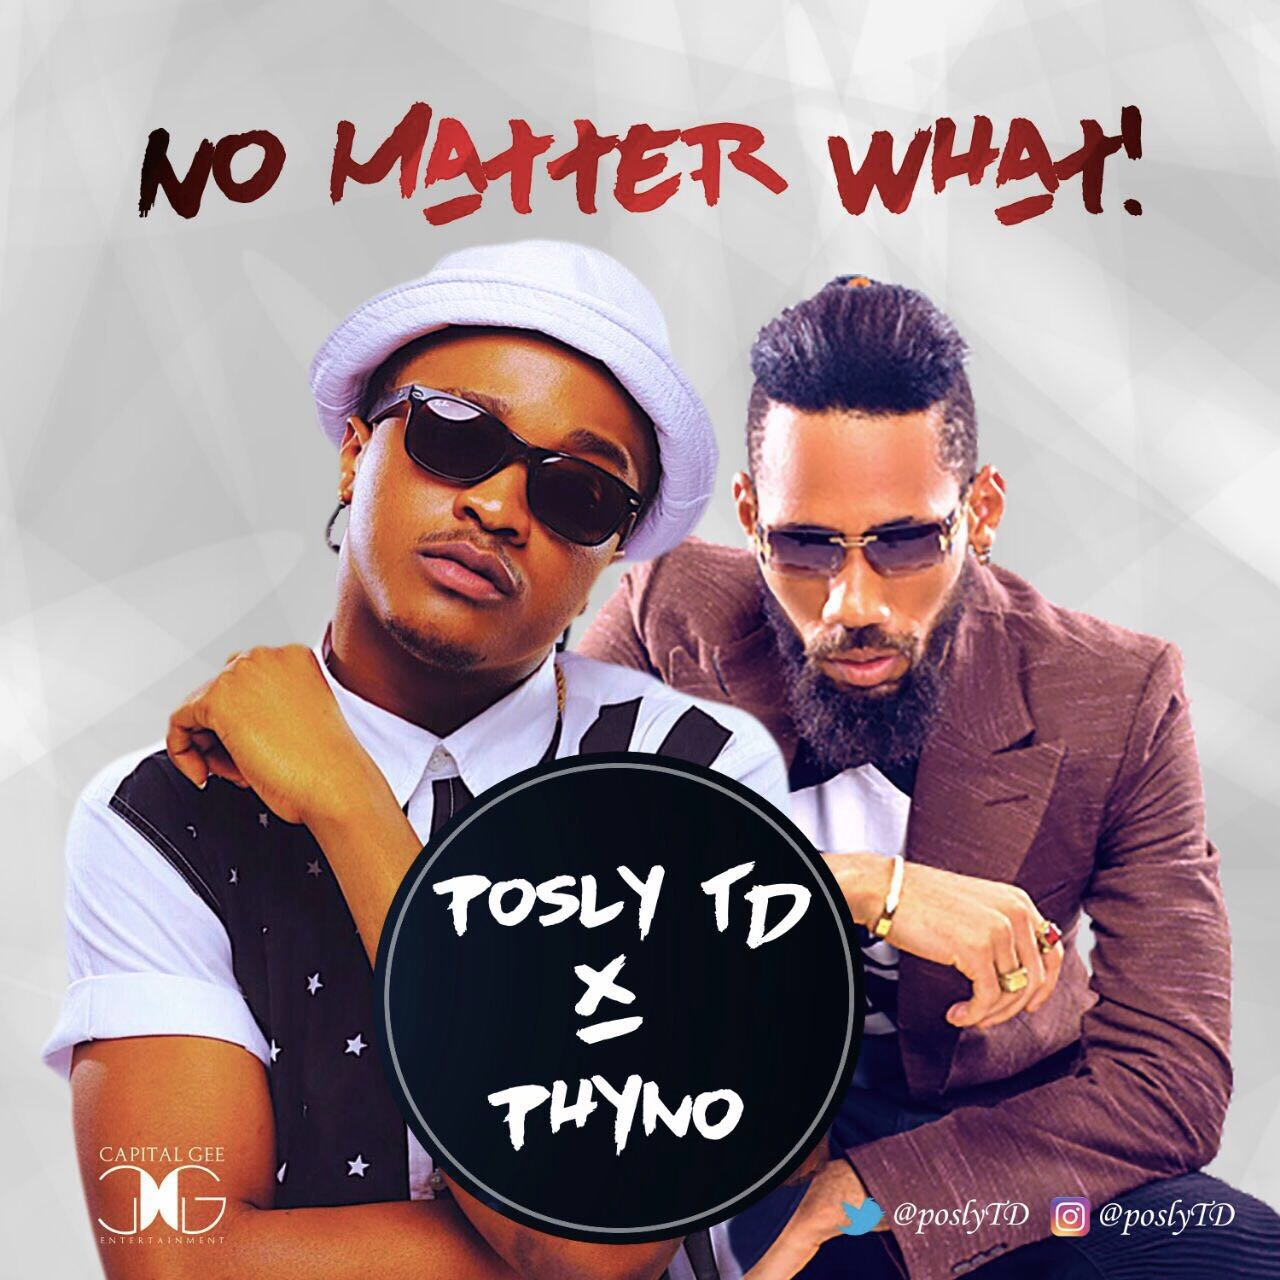 Posly TD ft. Phyno - No Matter What